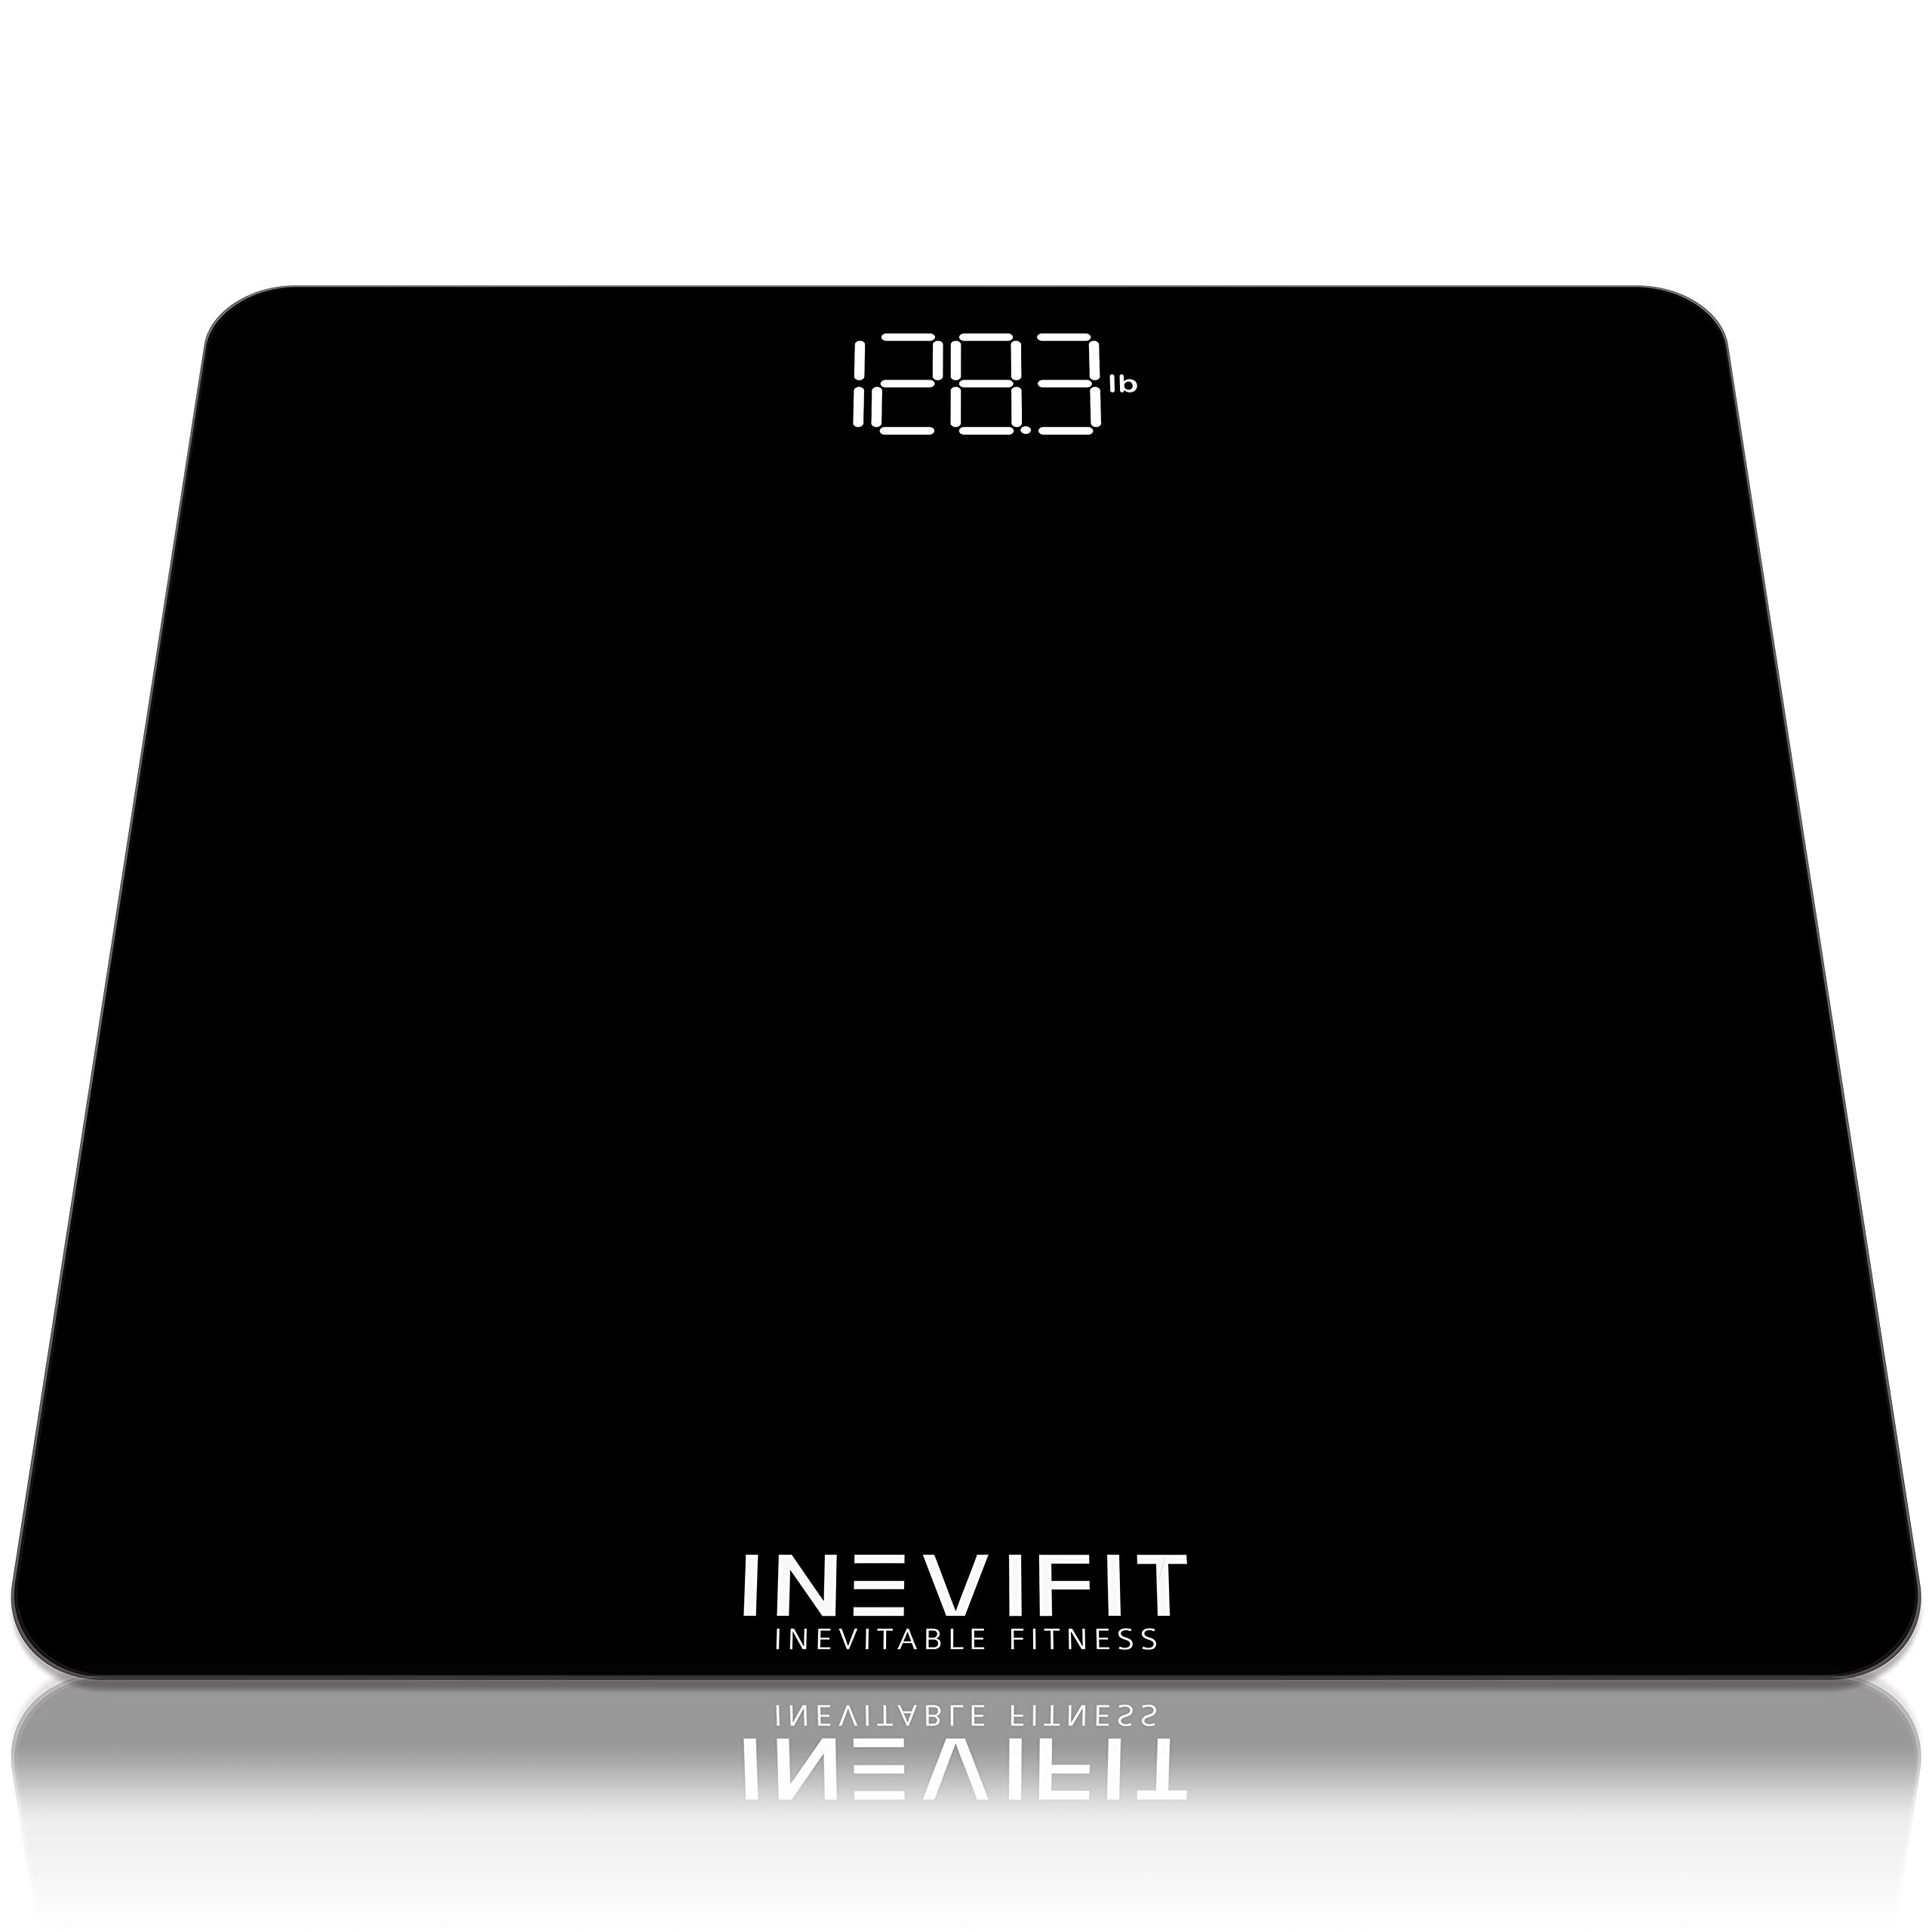 INEVIFIT Bathroom Scale, Digital Bathroom Body Scale, Measures Weight for Multiple Users.